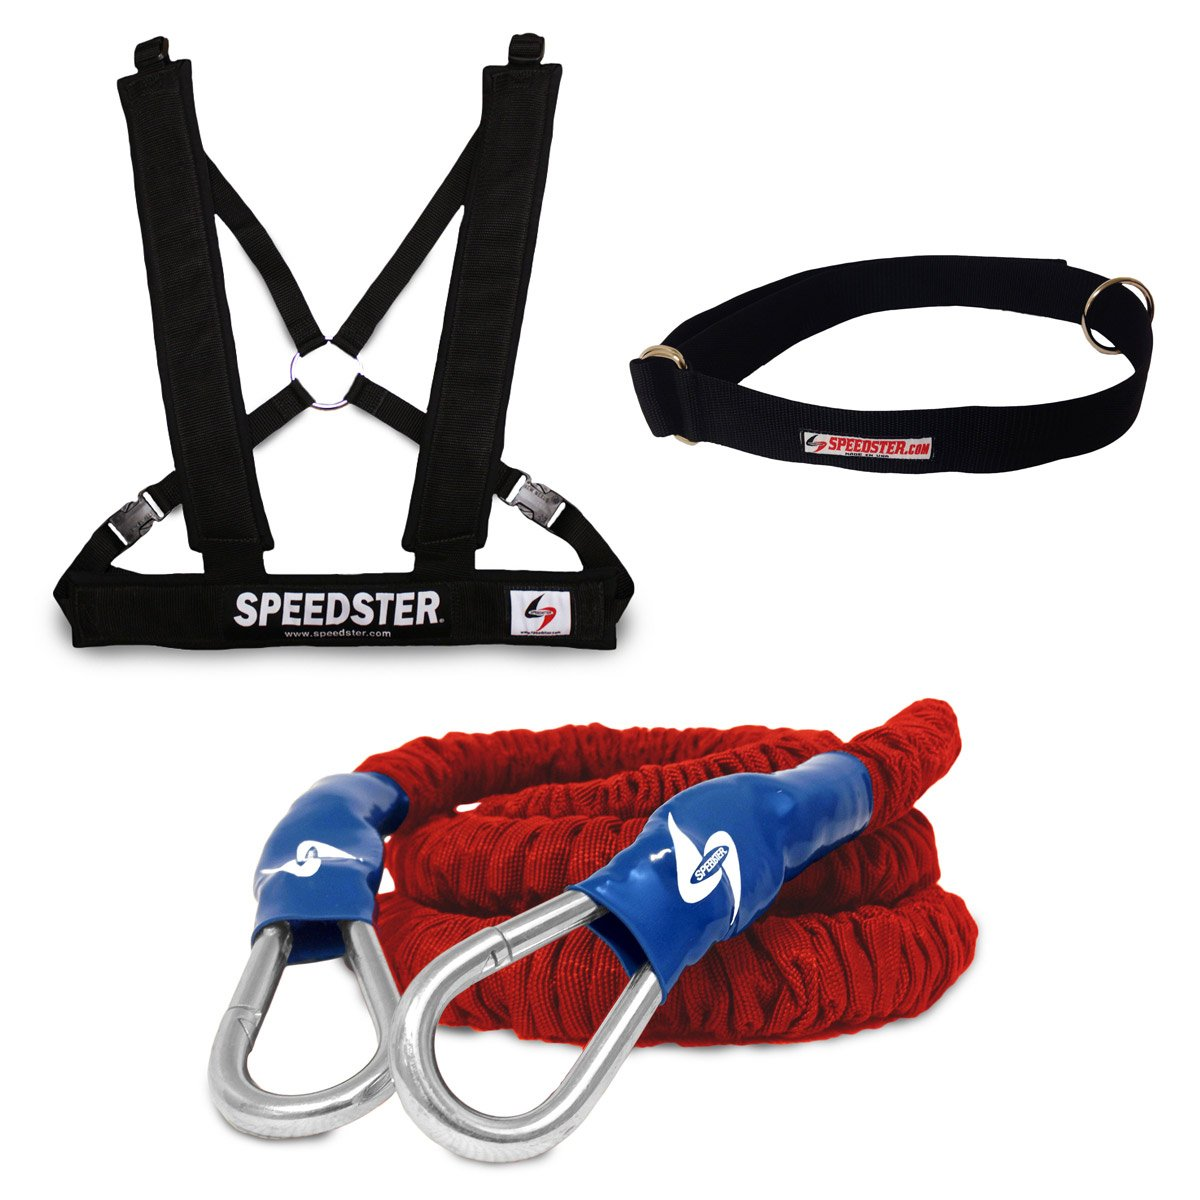 SPEEDSTER Rocket Single Overspeed Trainer HEAVY RESISTANCE 30' COVERED CORD WITH PADDED SHOULDER HARNESS AND WAIST BELT by SPEEDSTER